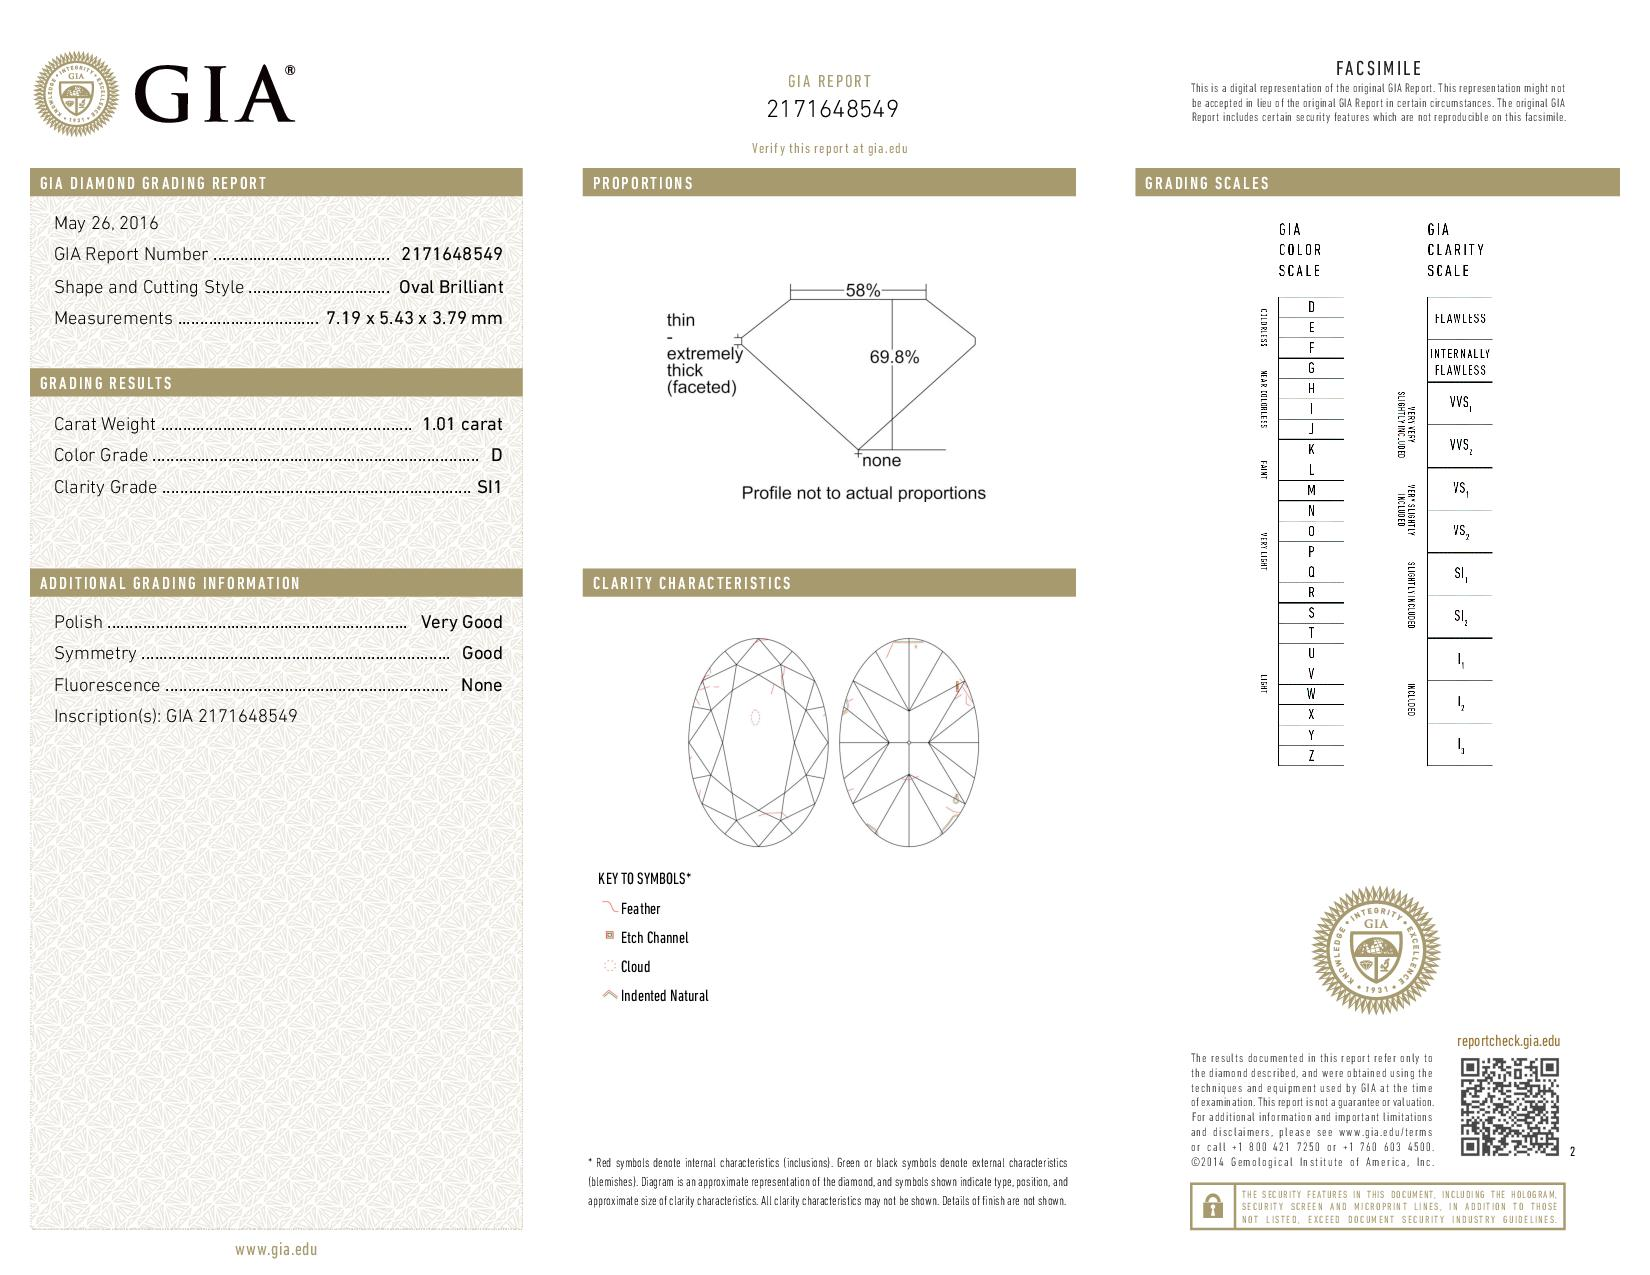 This is a 1.01 carat oval shape, D color, SI1 clarity natural diamond accompanied by a GIA grading report.